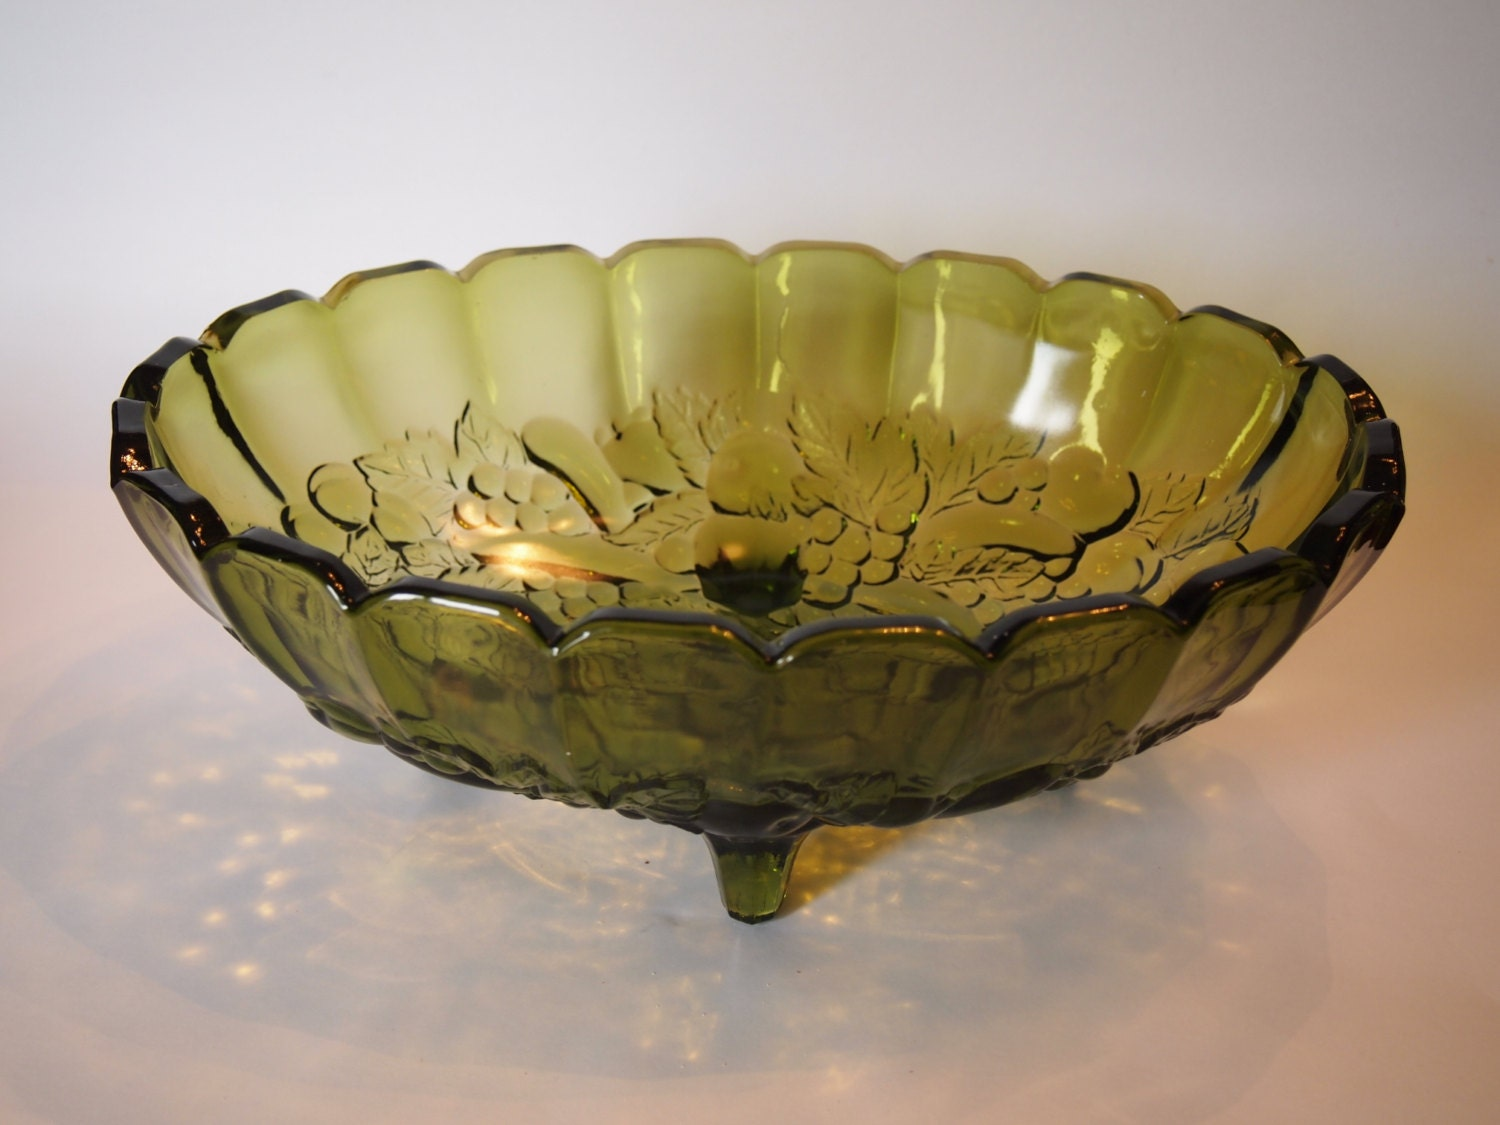 Avocado glass footed fruit bowl indiana glass centerpiece - Footed bowl centerpiece ...